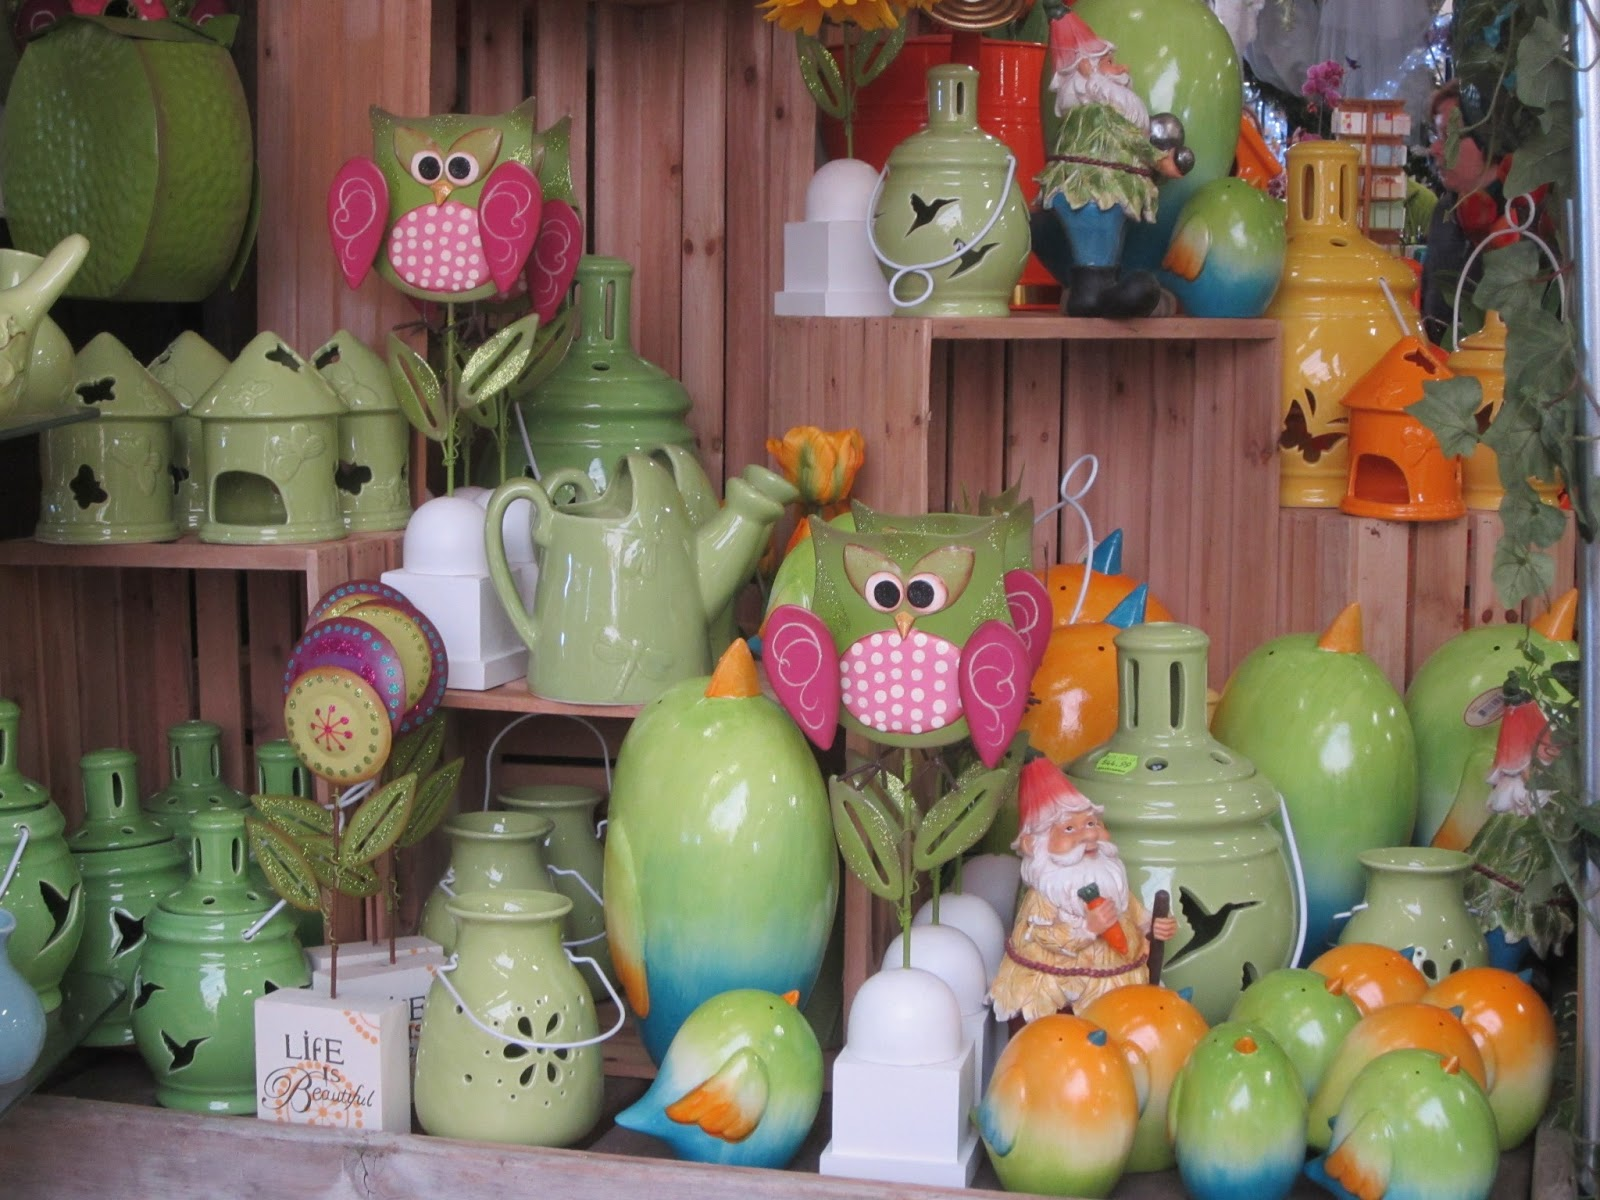 Outdoor easter decorations - Photo By Claire Jefford At The Garden Gallery